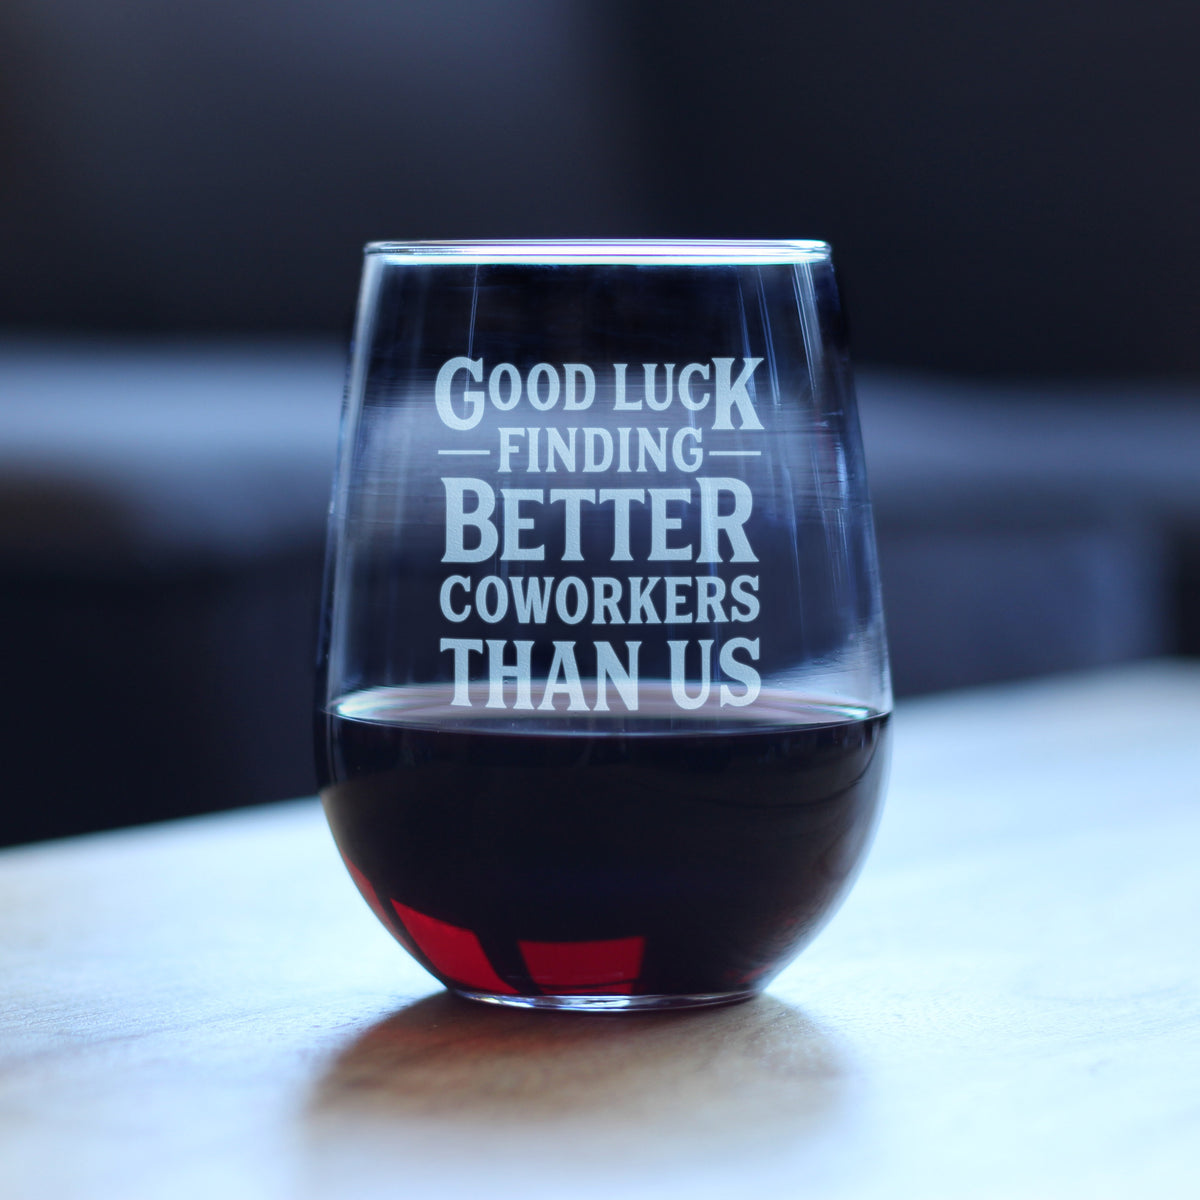 Good Luck Finding Better Coworkers Than Us - 17 Ounce Stemless Wine Glass